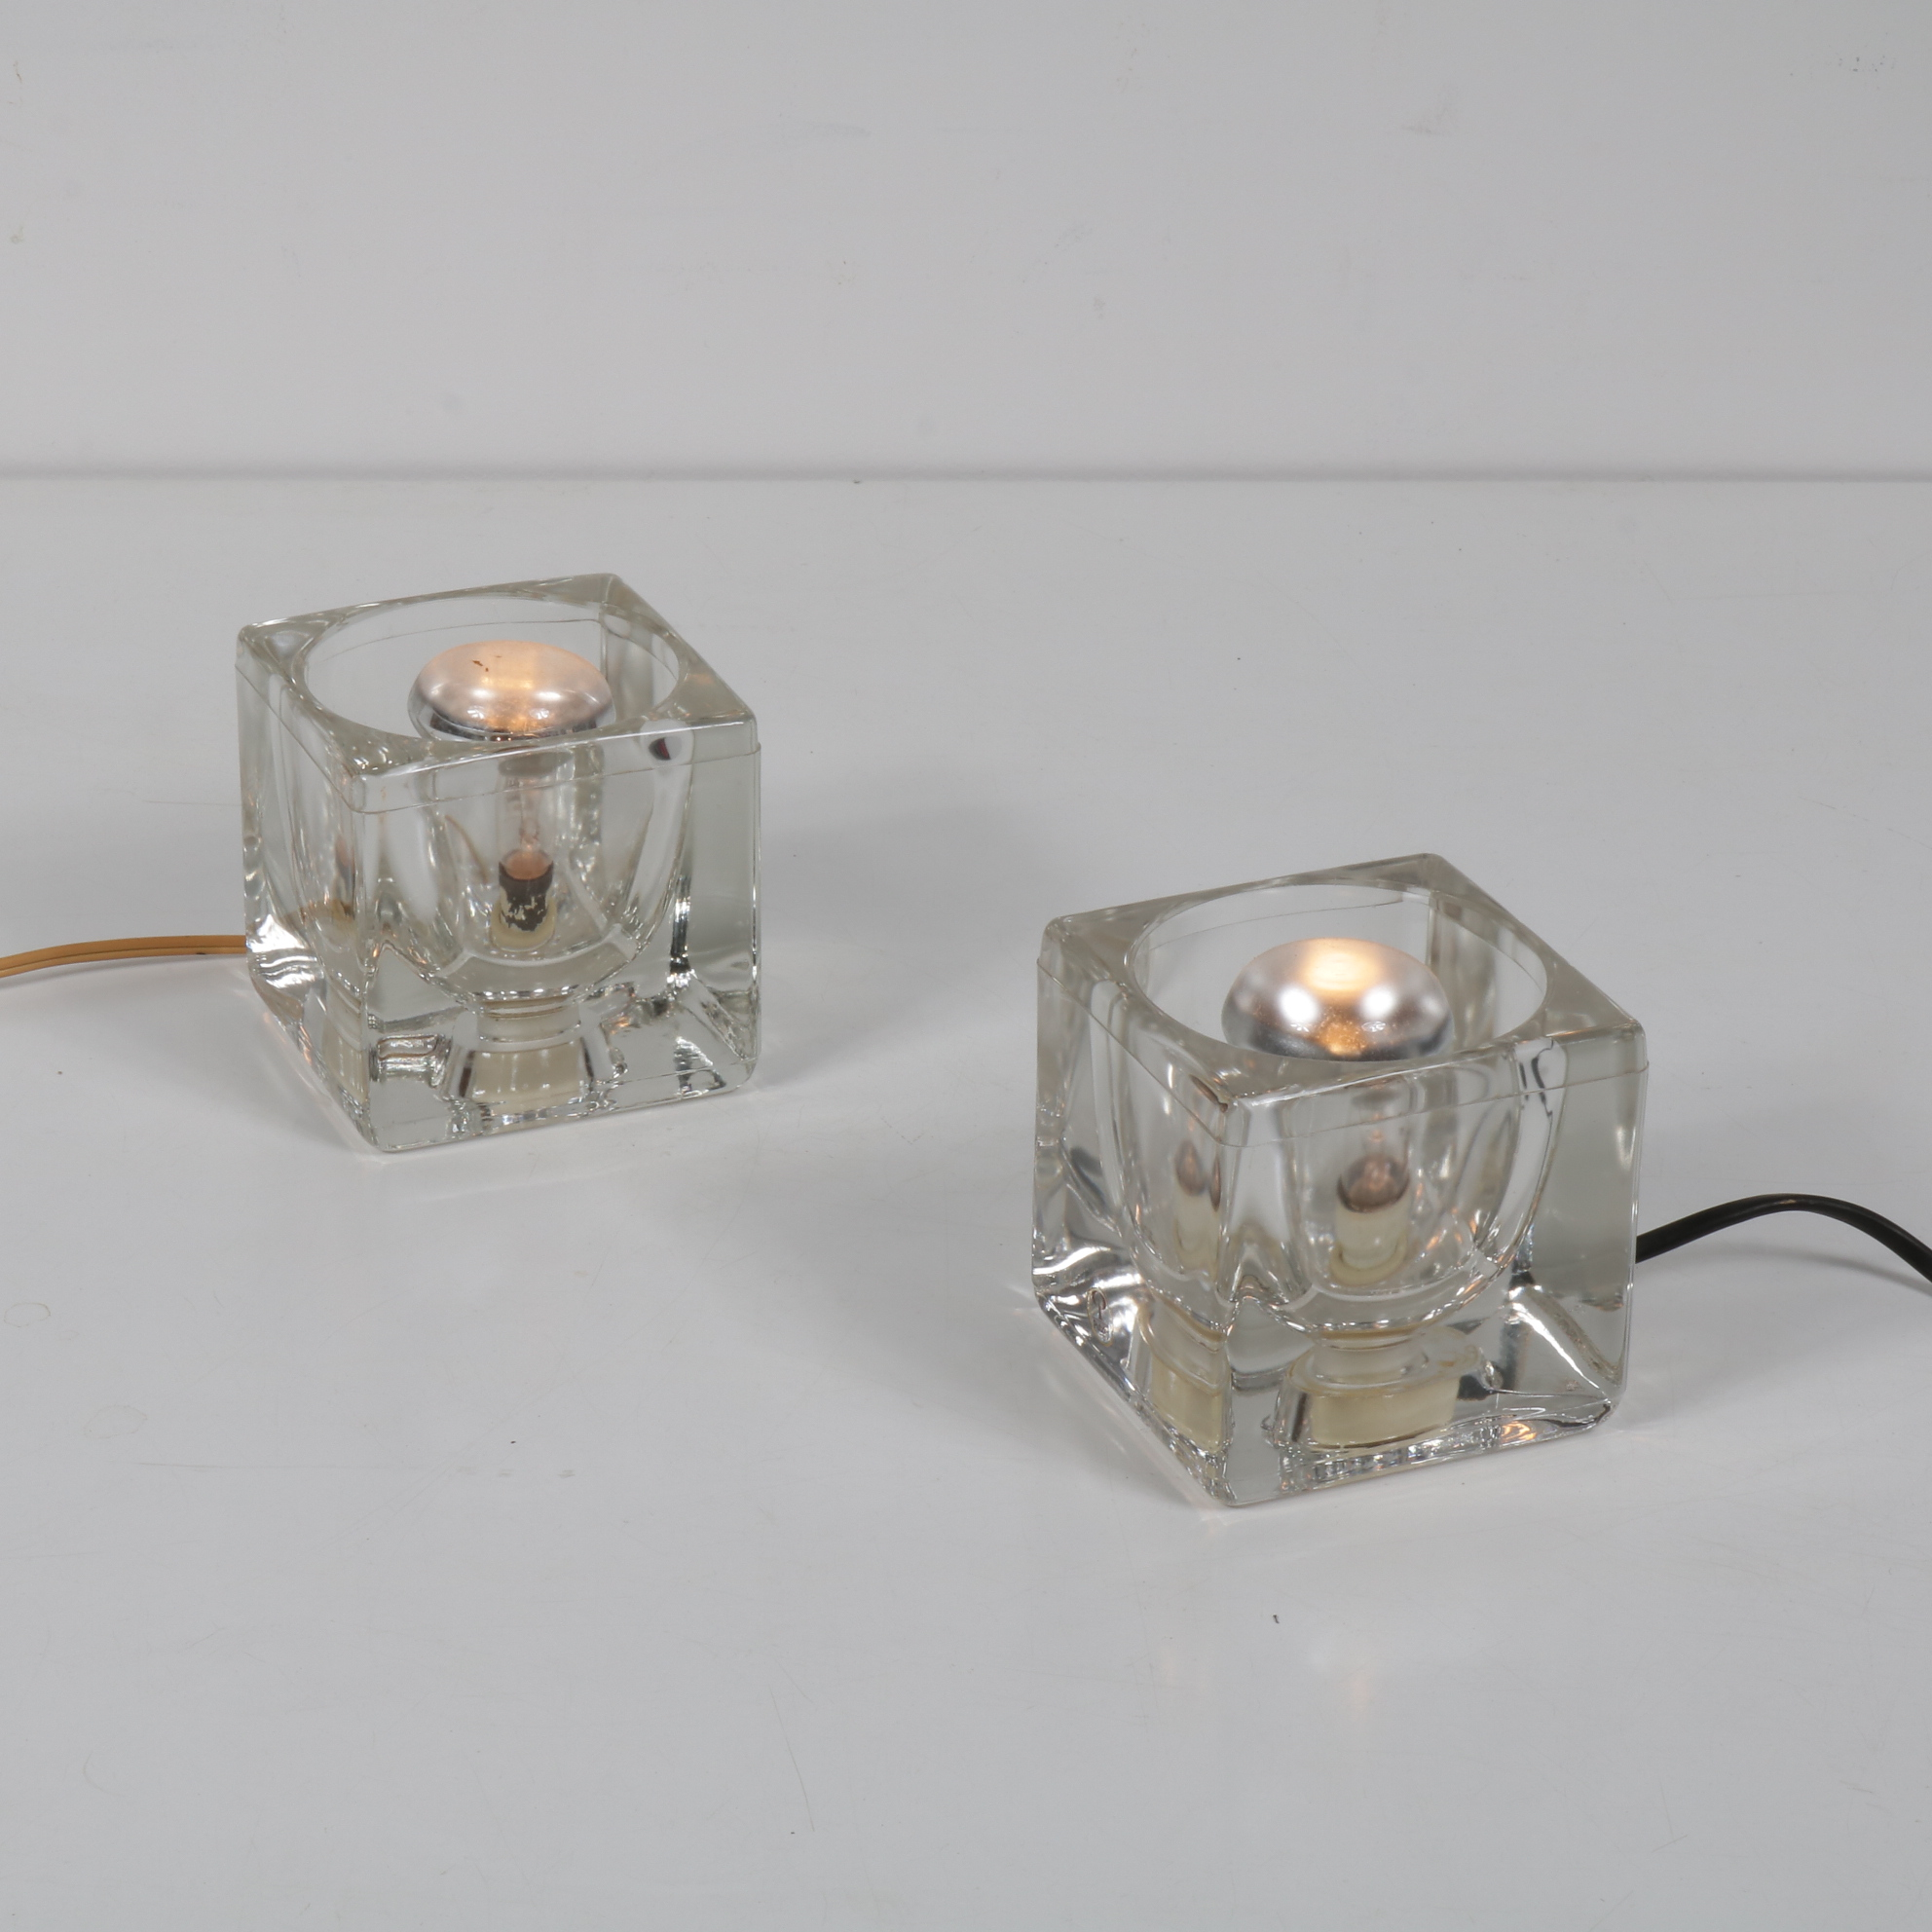 L3755 1960's Nice quality glass cube lamp Putzler / Germany